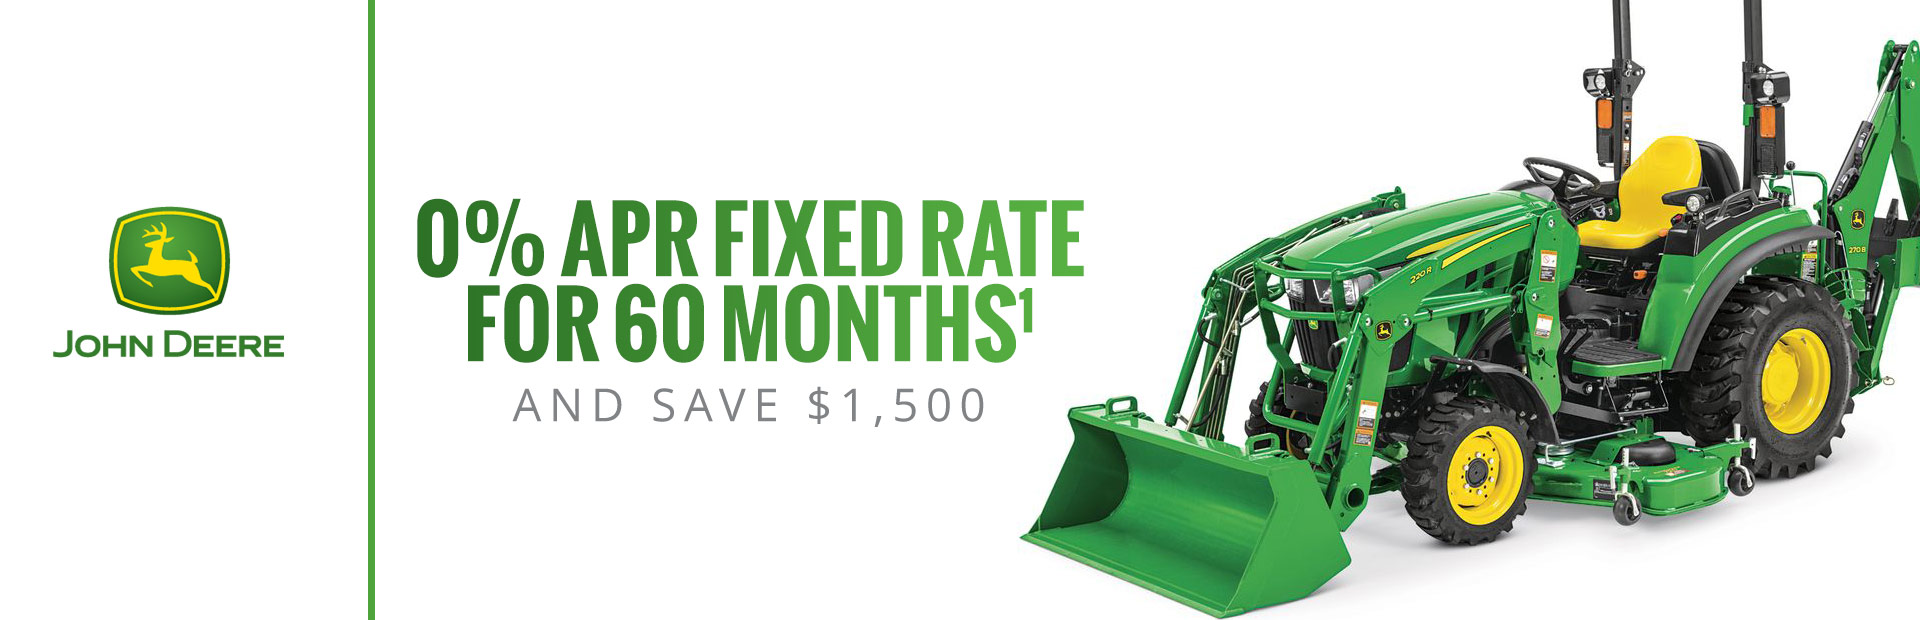 0% APR fixed rate for 60 Months AND Save $1,500